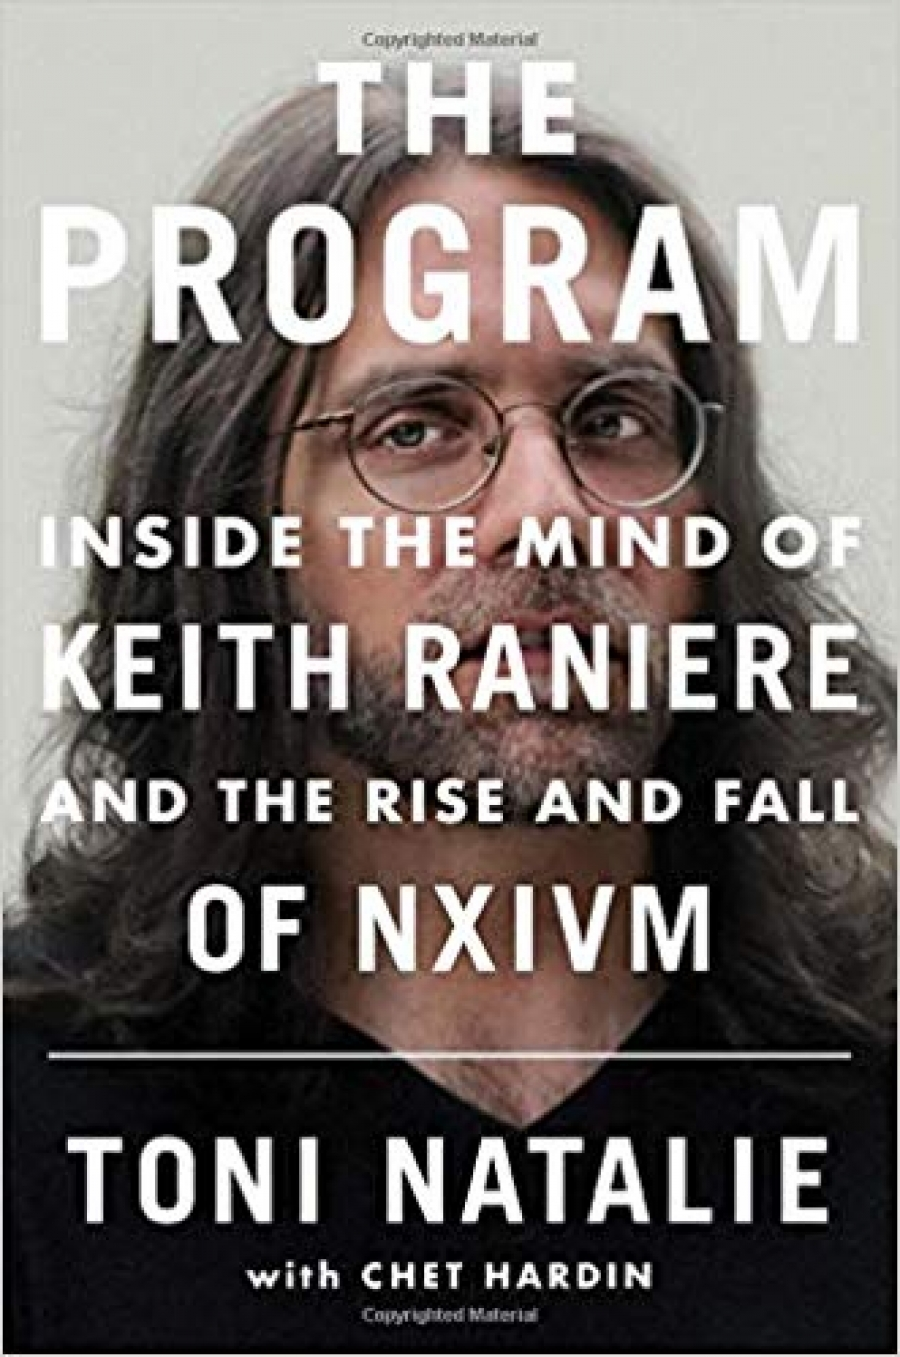 Toni Natalie talks about NXIVM and Keith Raniere